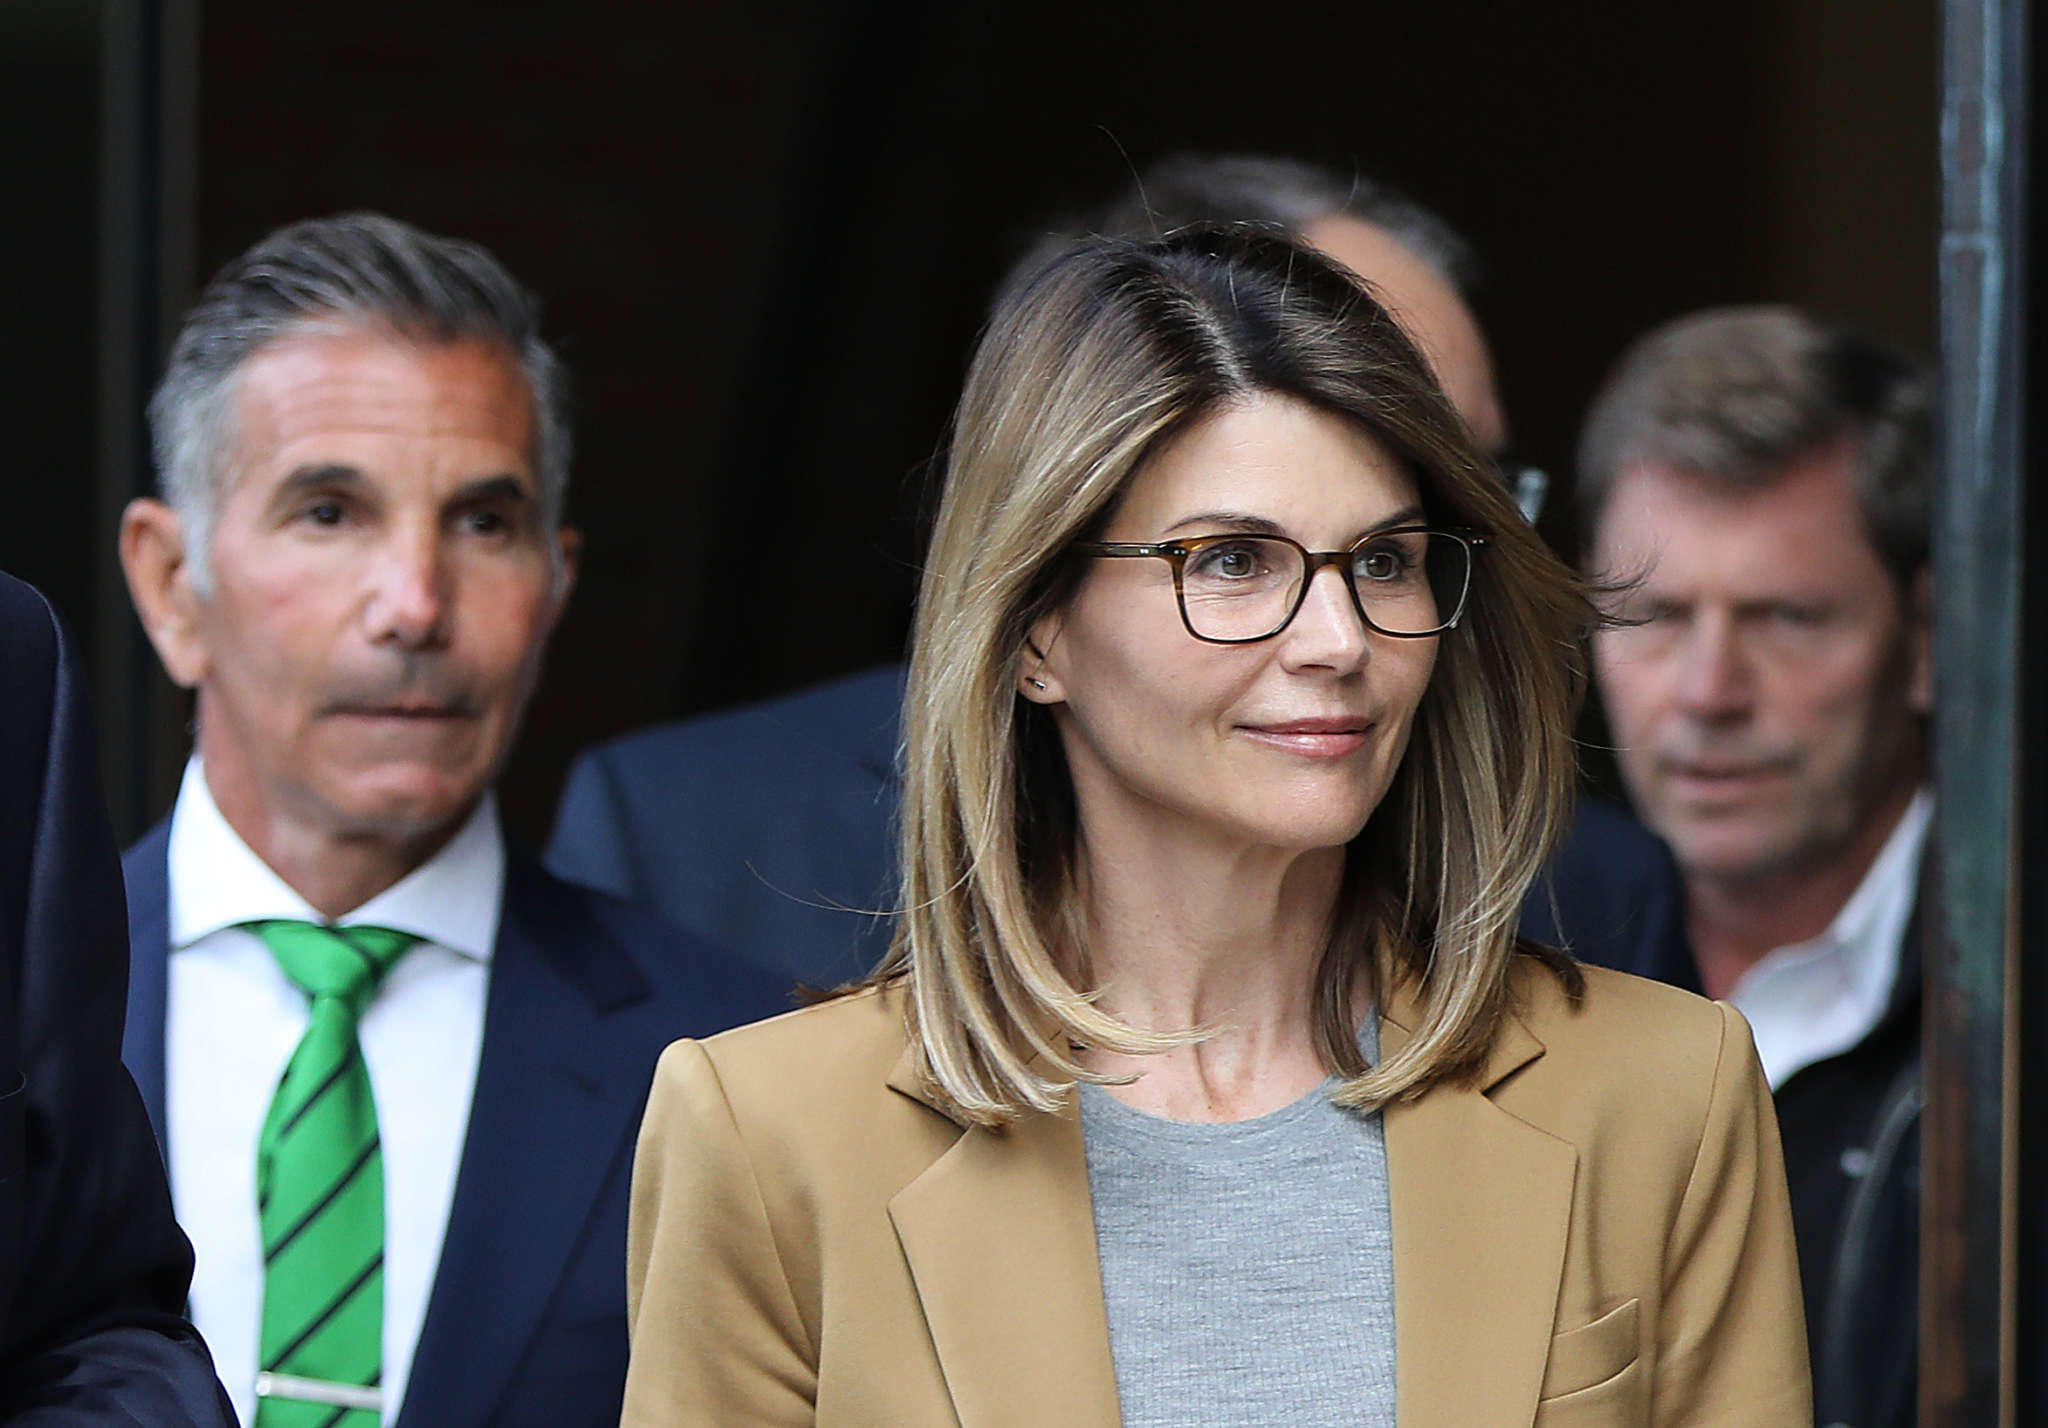 lori-loughlin-leaves-prison-after-serving-her-2-months-behind-bars